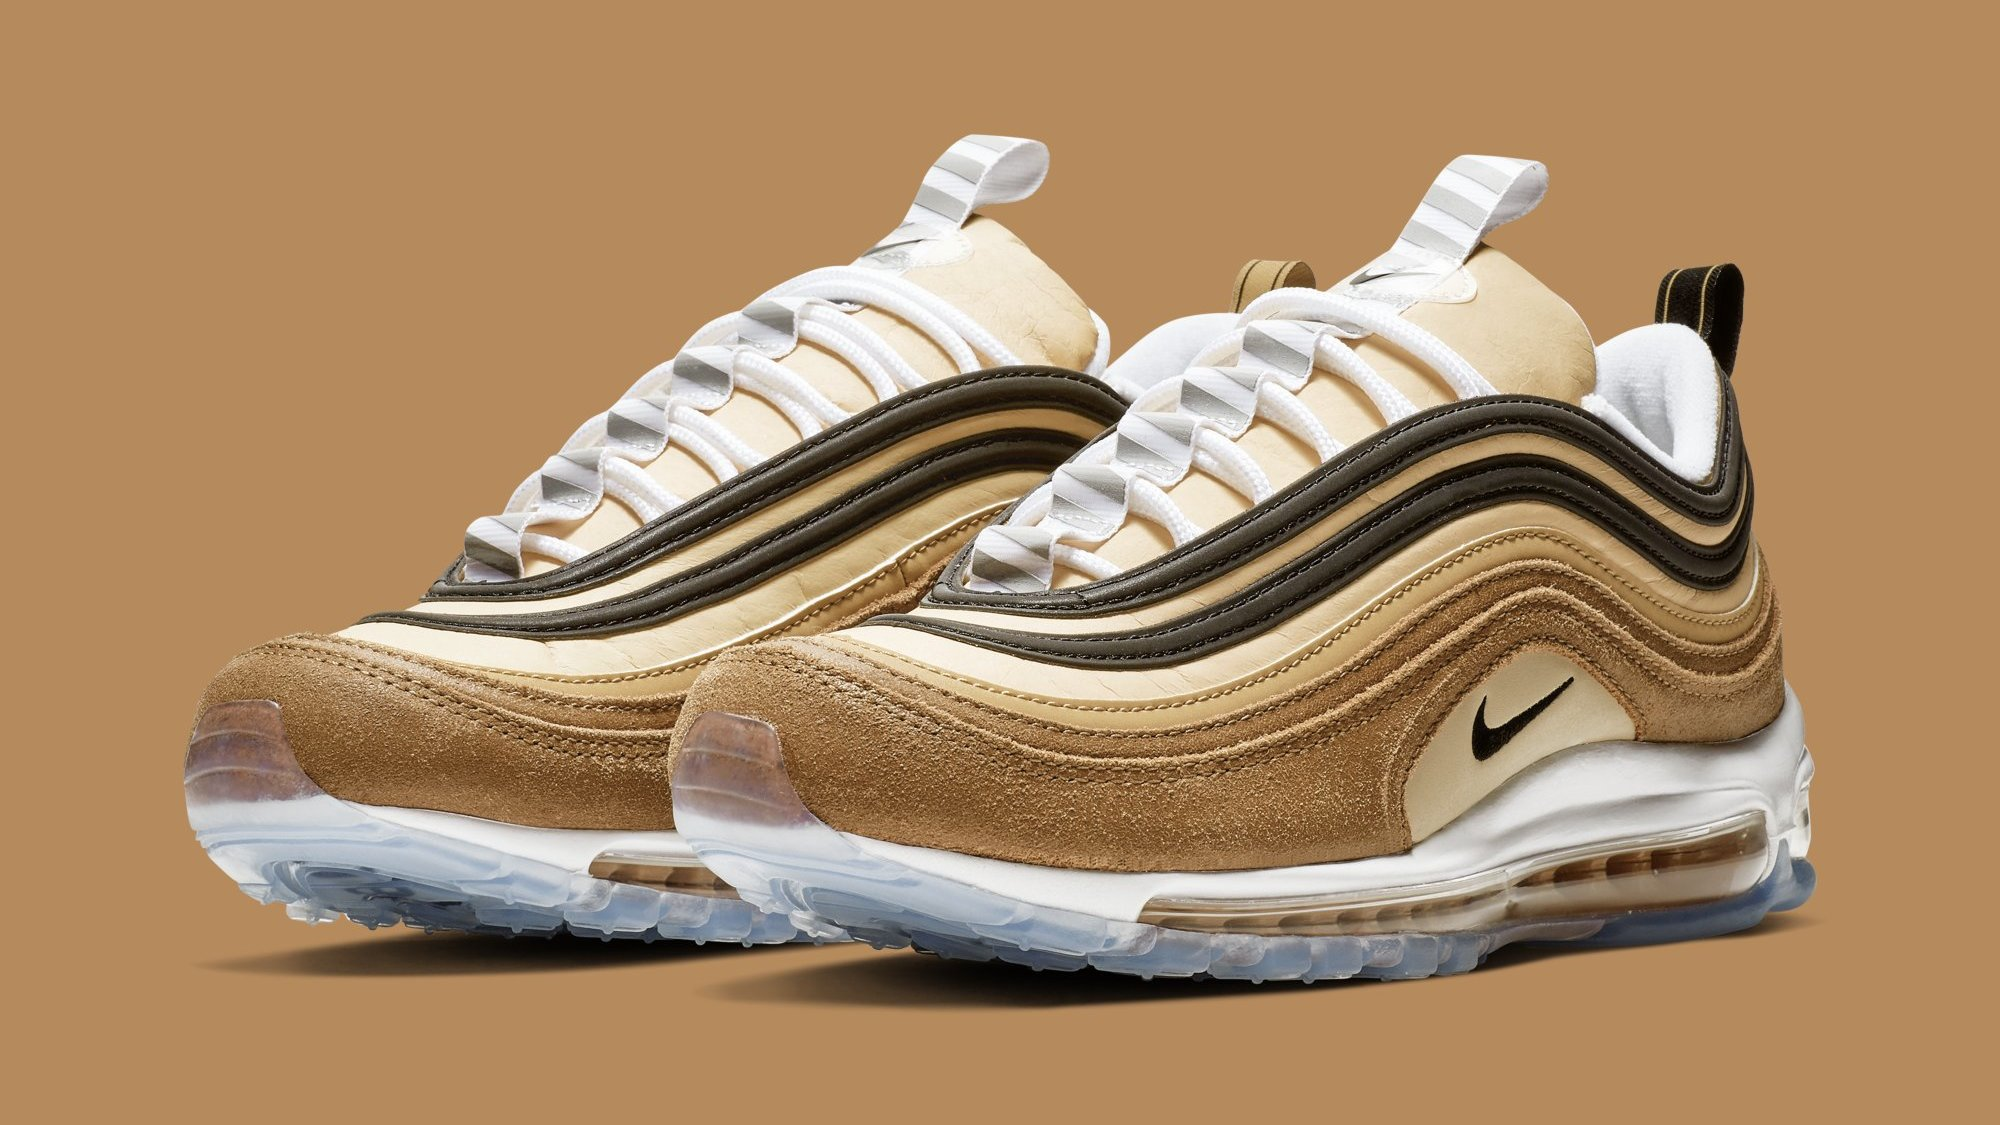 Nike Air Max 97 Ale Brown Black Elemental Gold 921826 201 Release Date Sole Collector